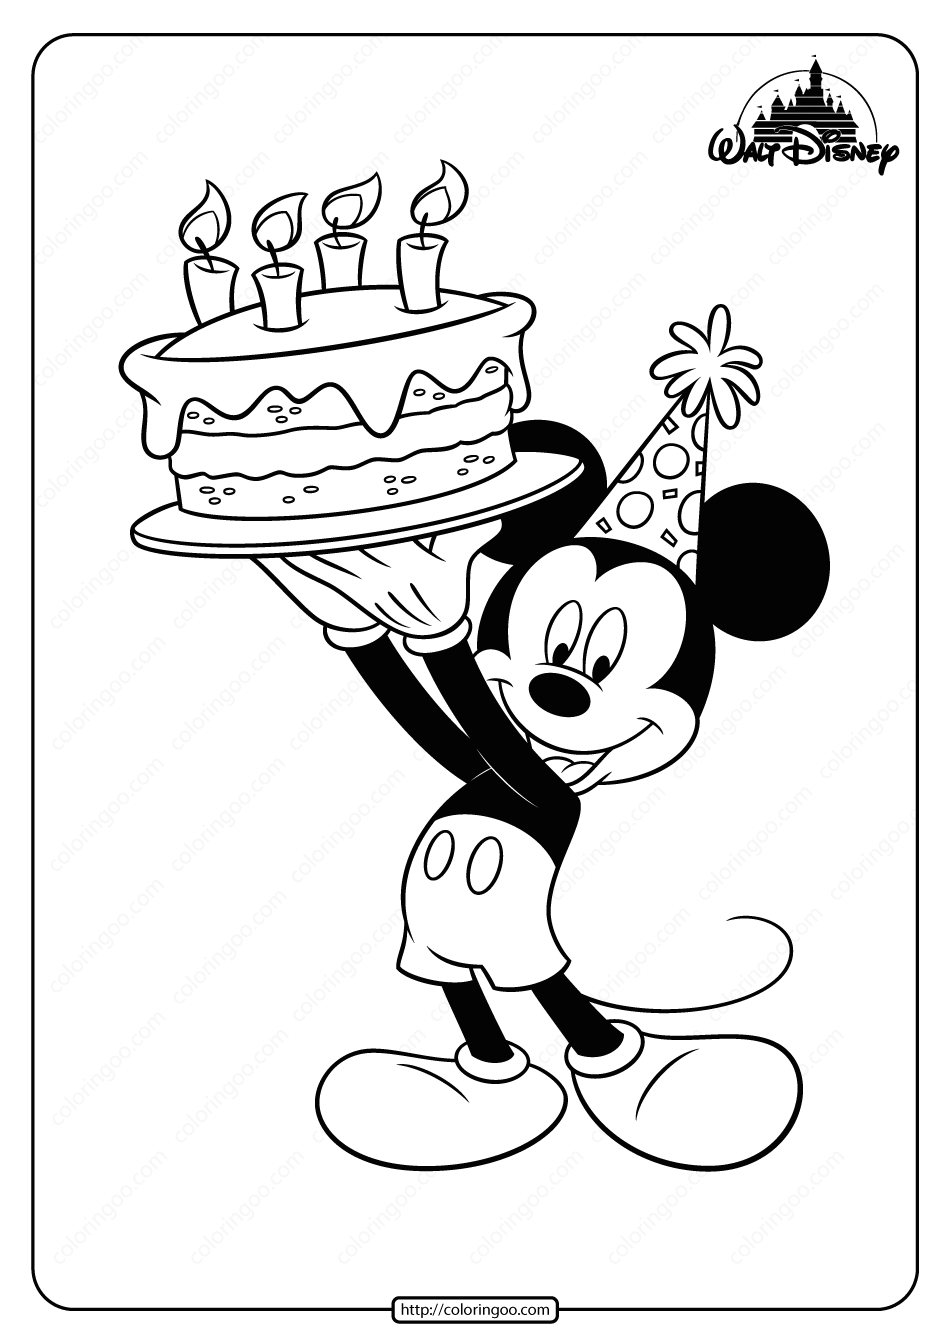 Printable Mickey Mouse Birthday Coloring Page Birthday Coloring Pages Mickey Mouse Drawings Mickey Drawing